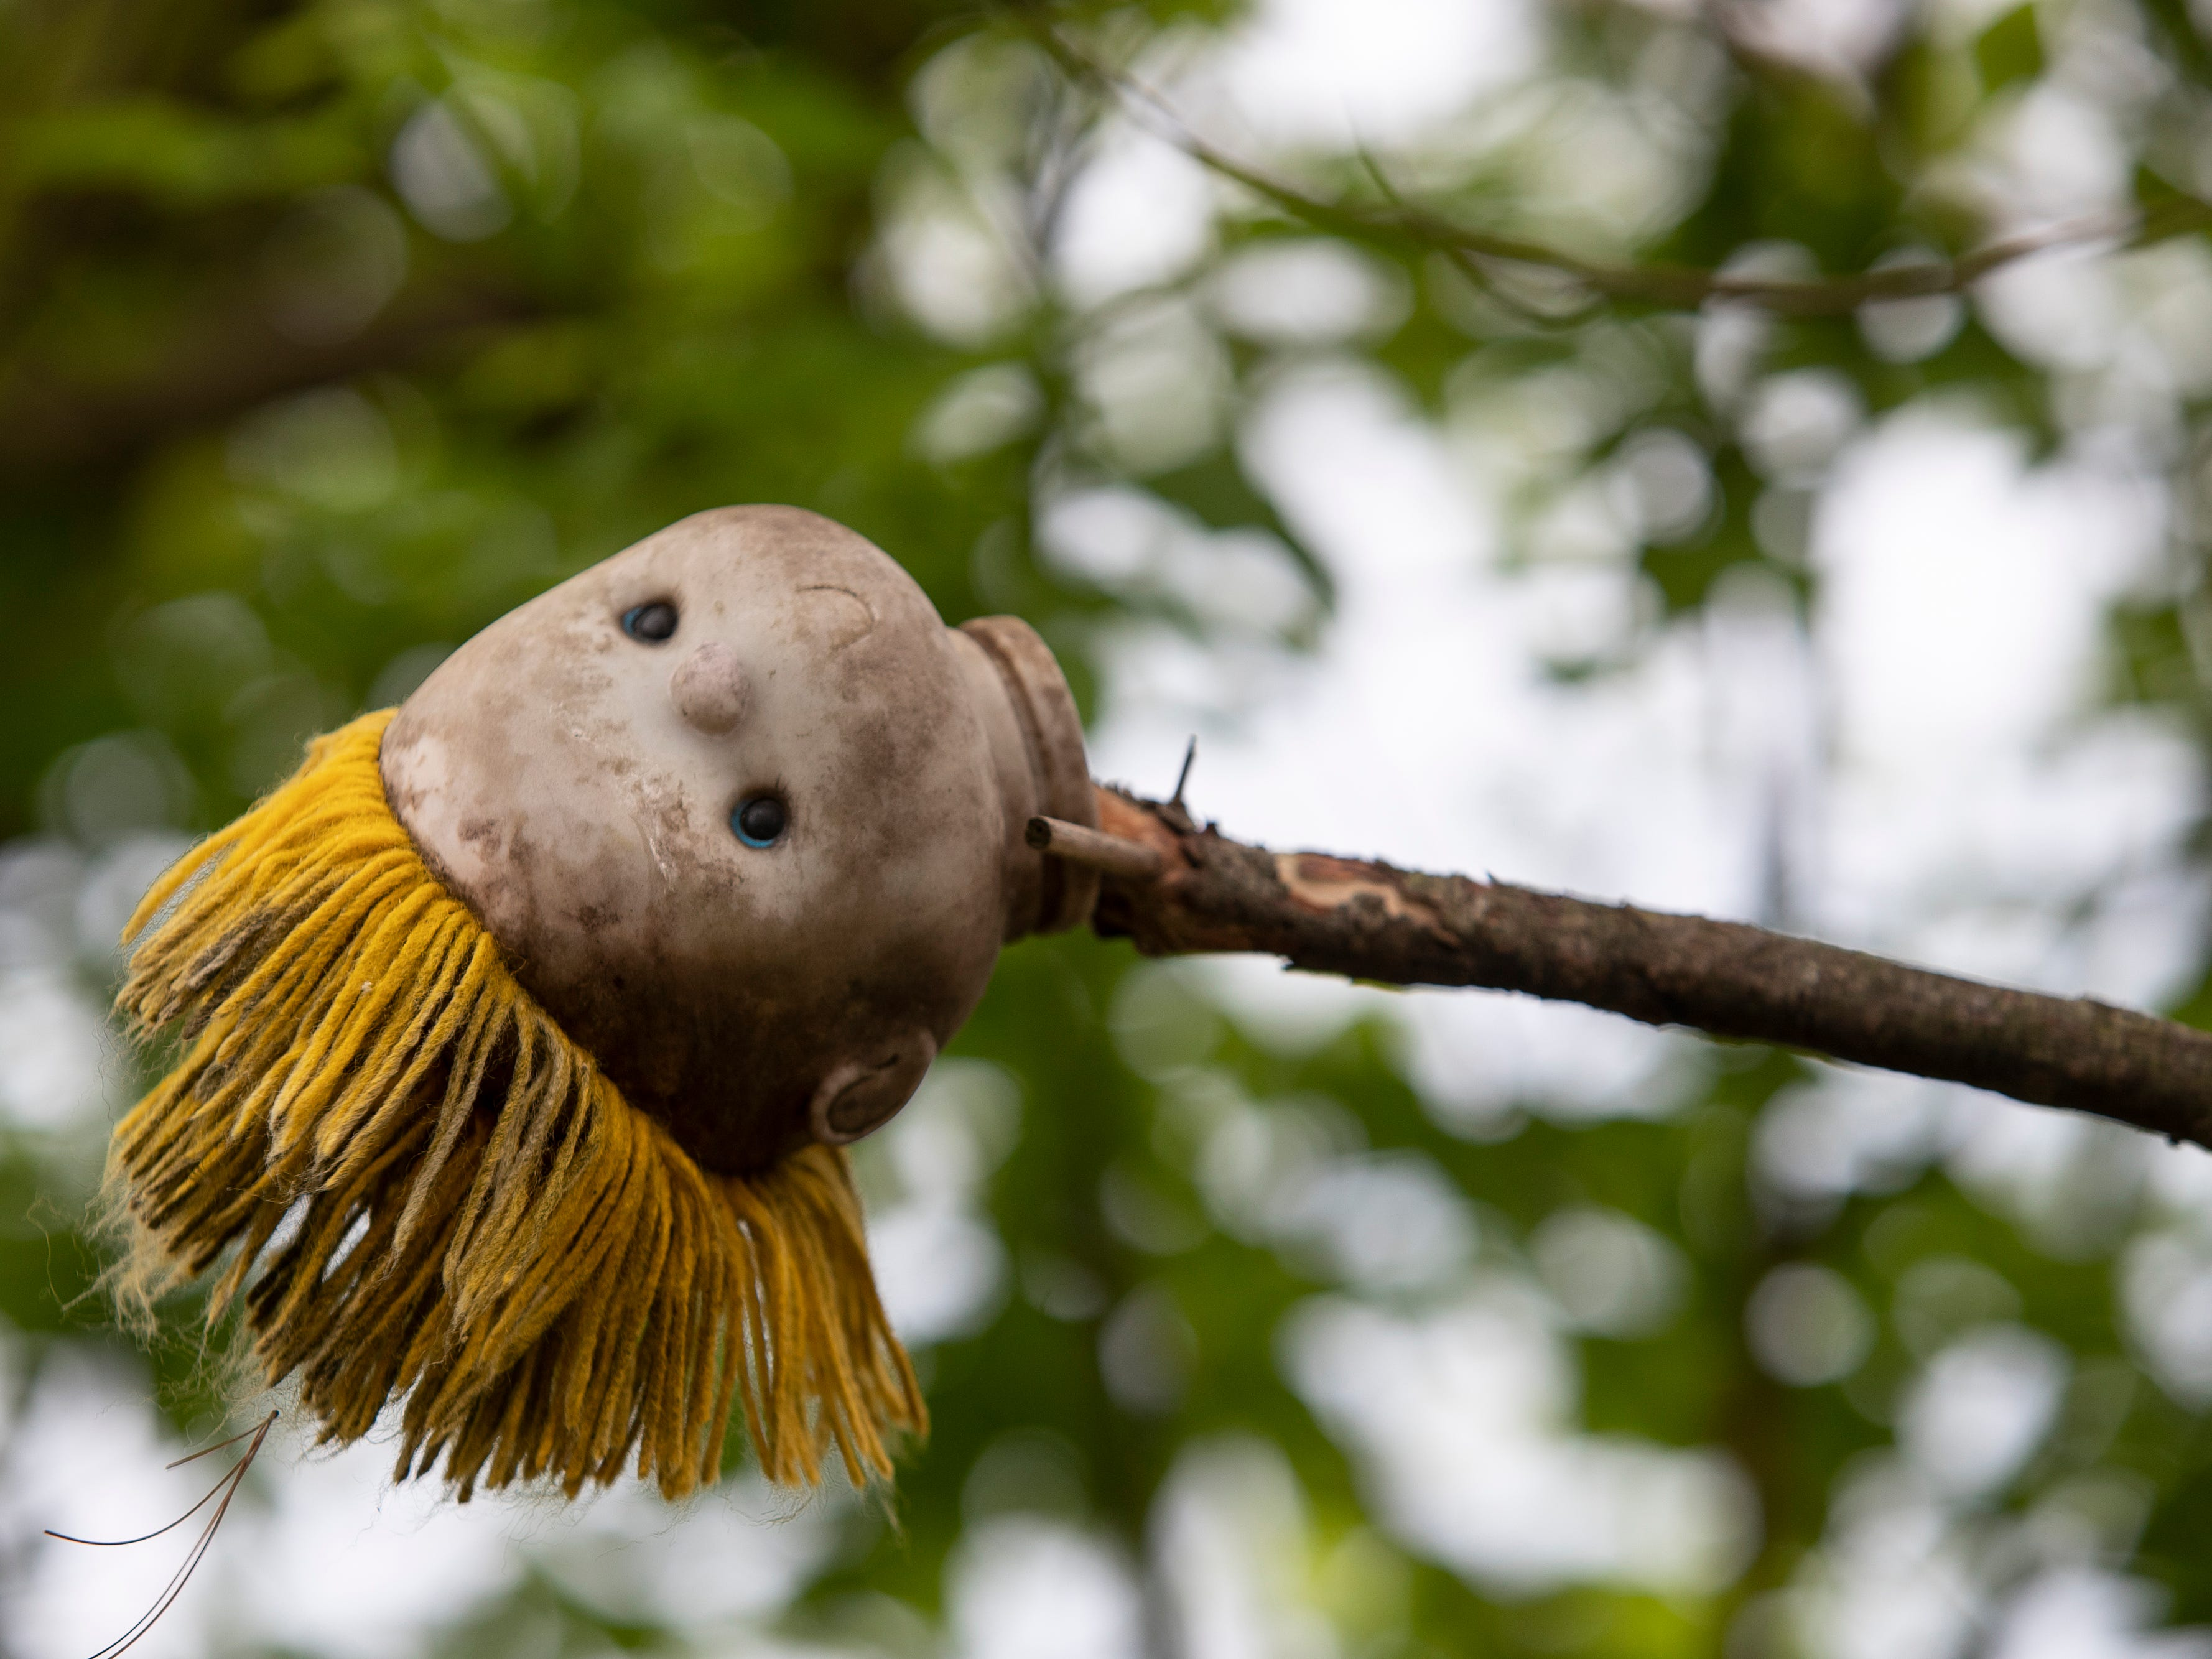 The head of a doll rests at the end of a tree branch at the Home for Wayward Babydolls. April 19, 2019